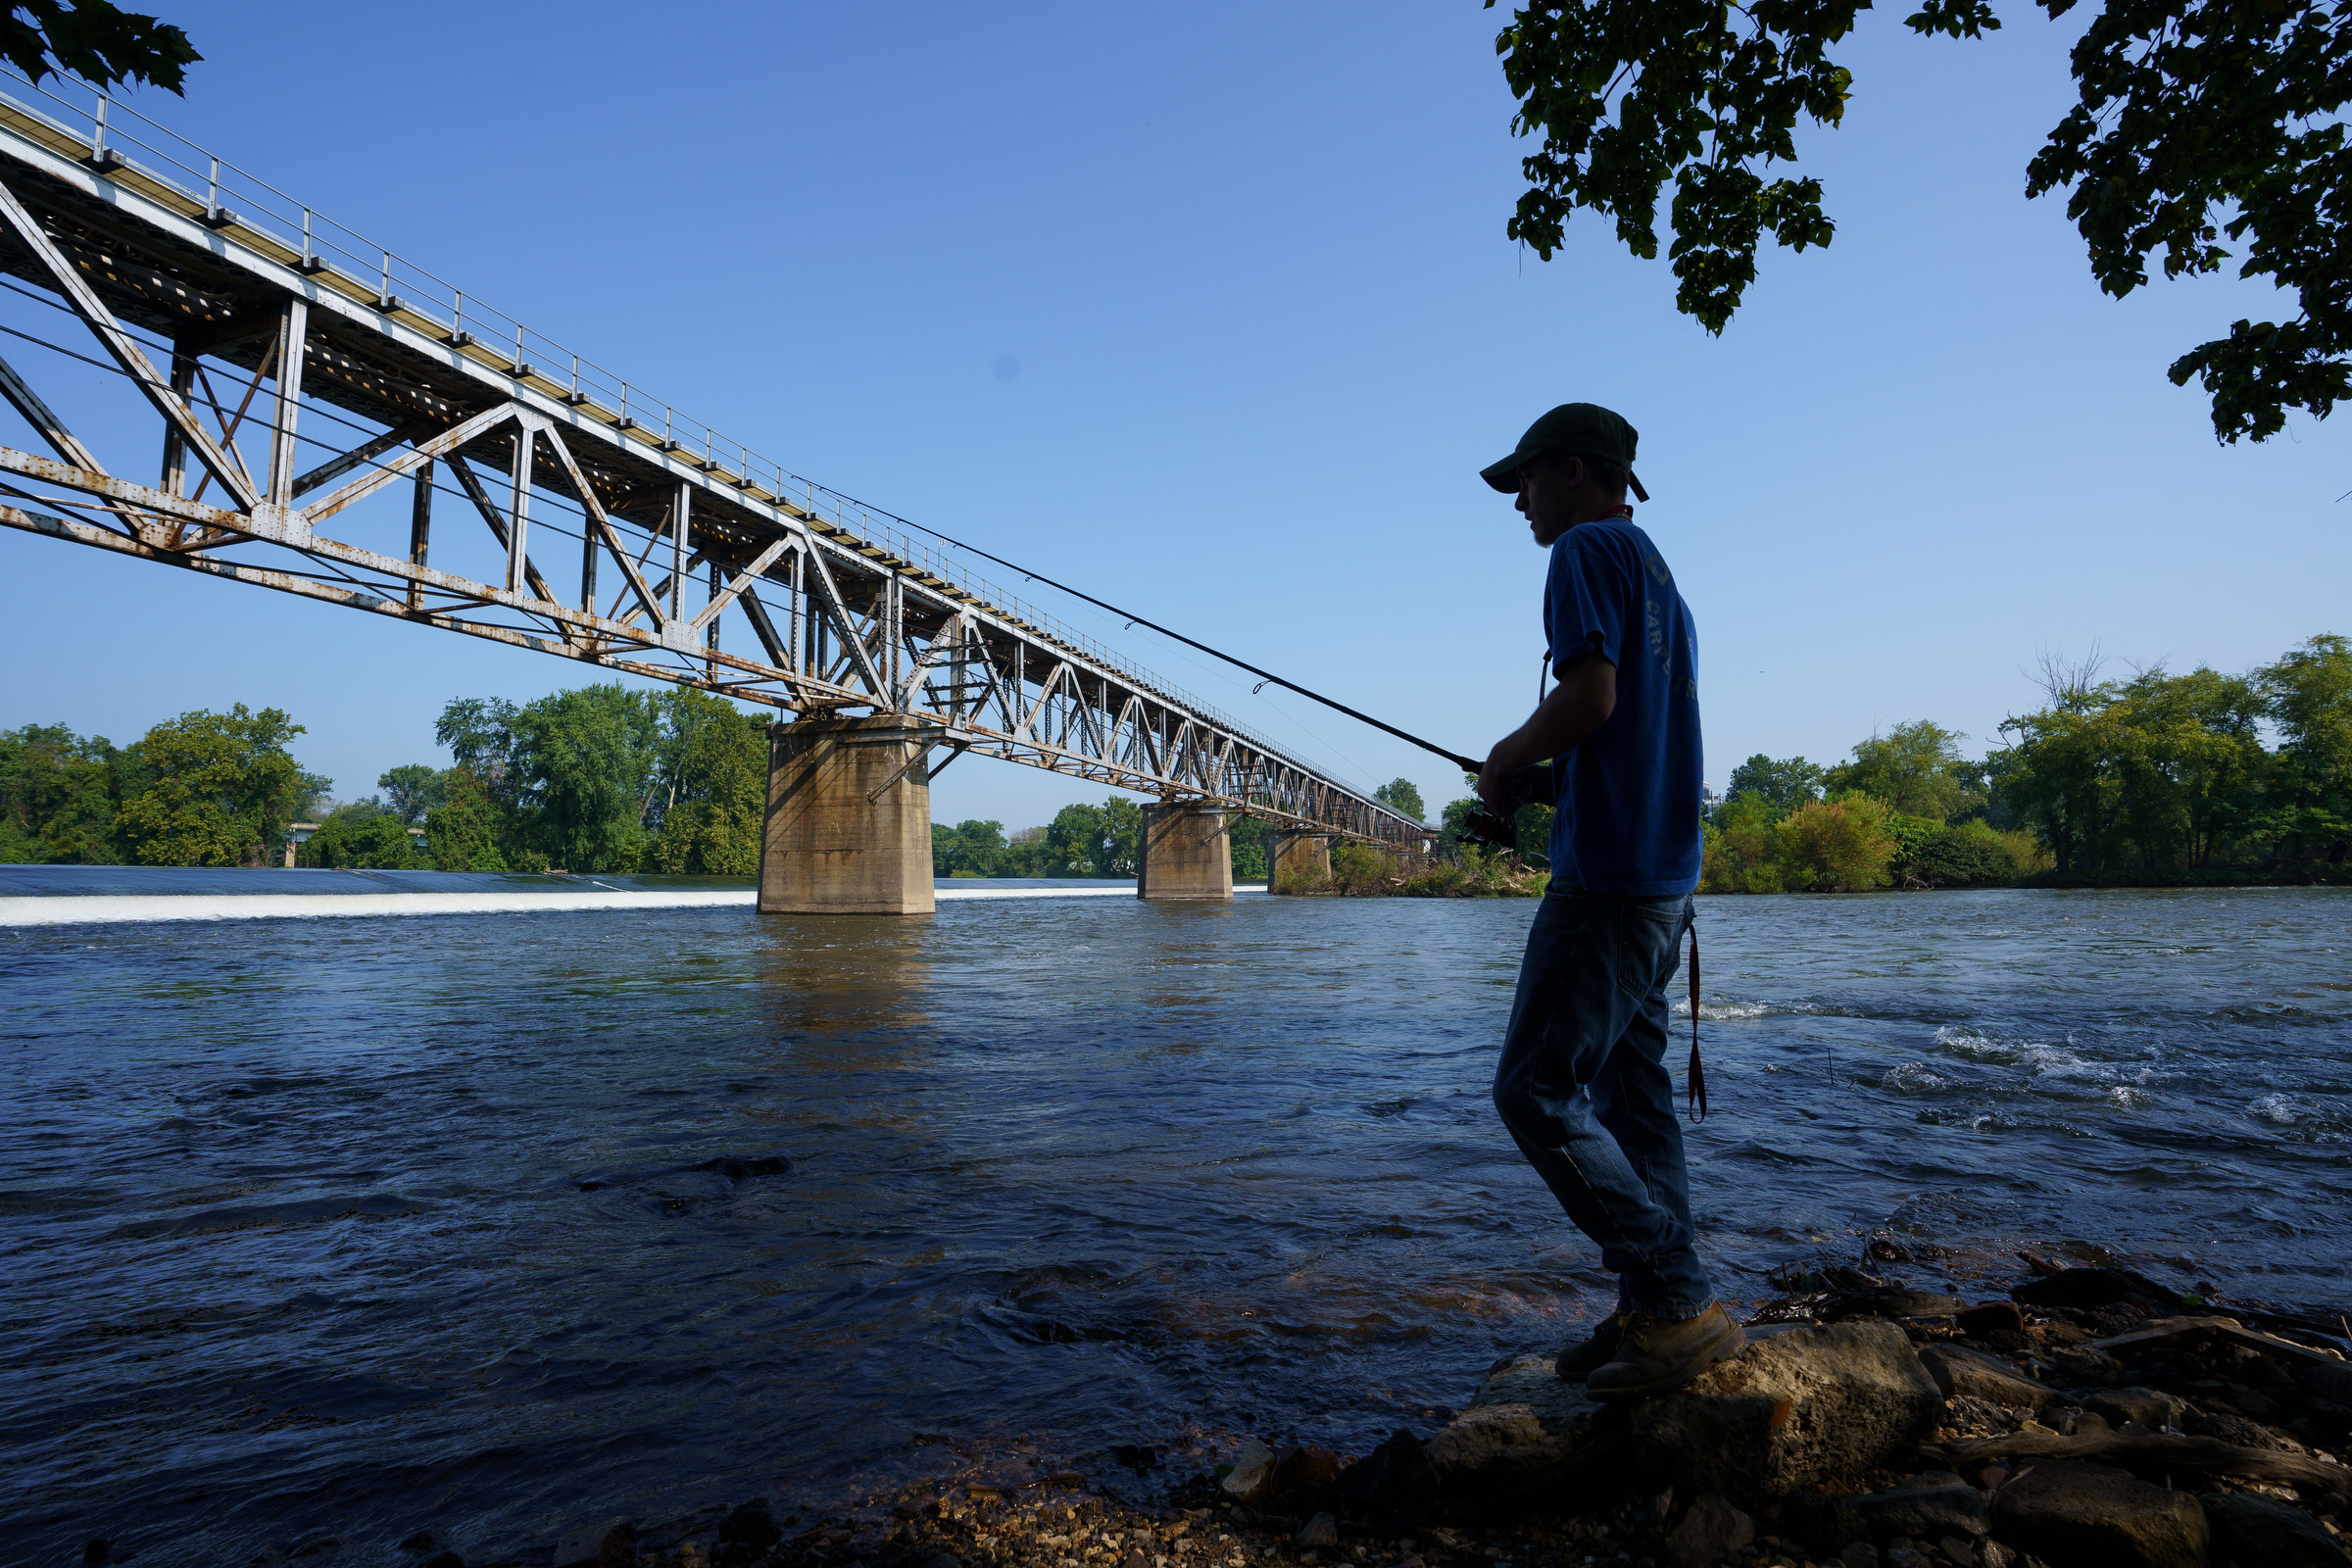 Kevin Rodenbaugh, 20, of King of Prussia, who recently caught a 45-inch Muskie in the Schuylkill, shown here fishing off the banks of the Schuykill River, near Bridgeton, PA, Tuesday, August 28, 2018. JESSICA GRIFFIN / Staff Photographer